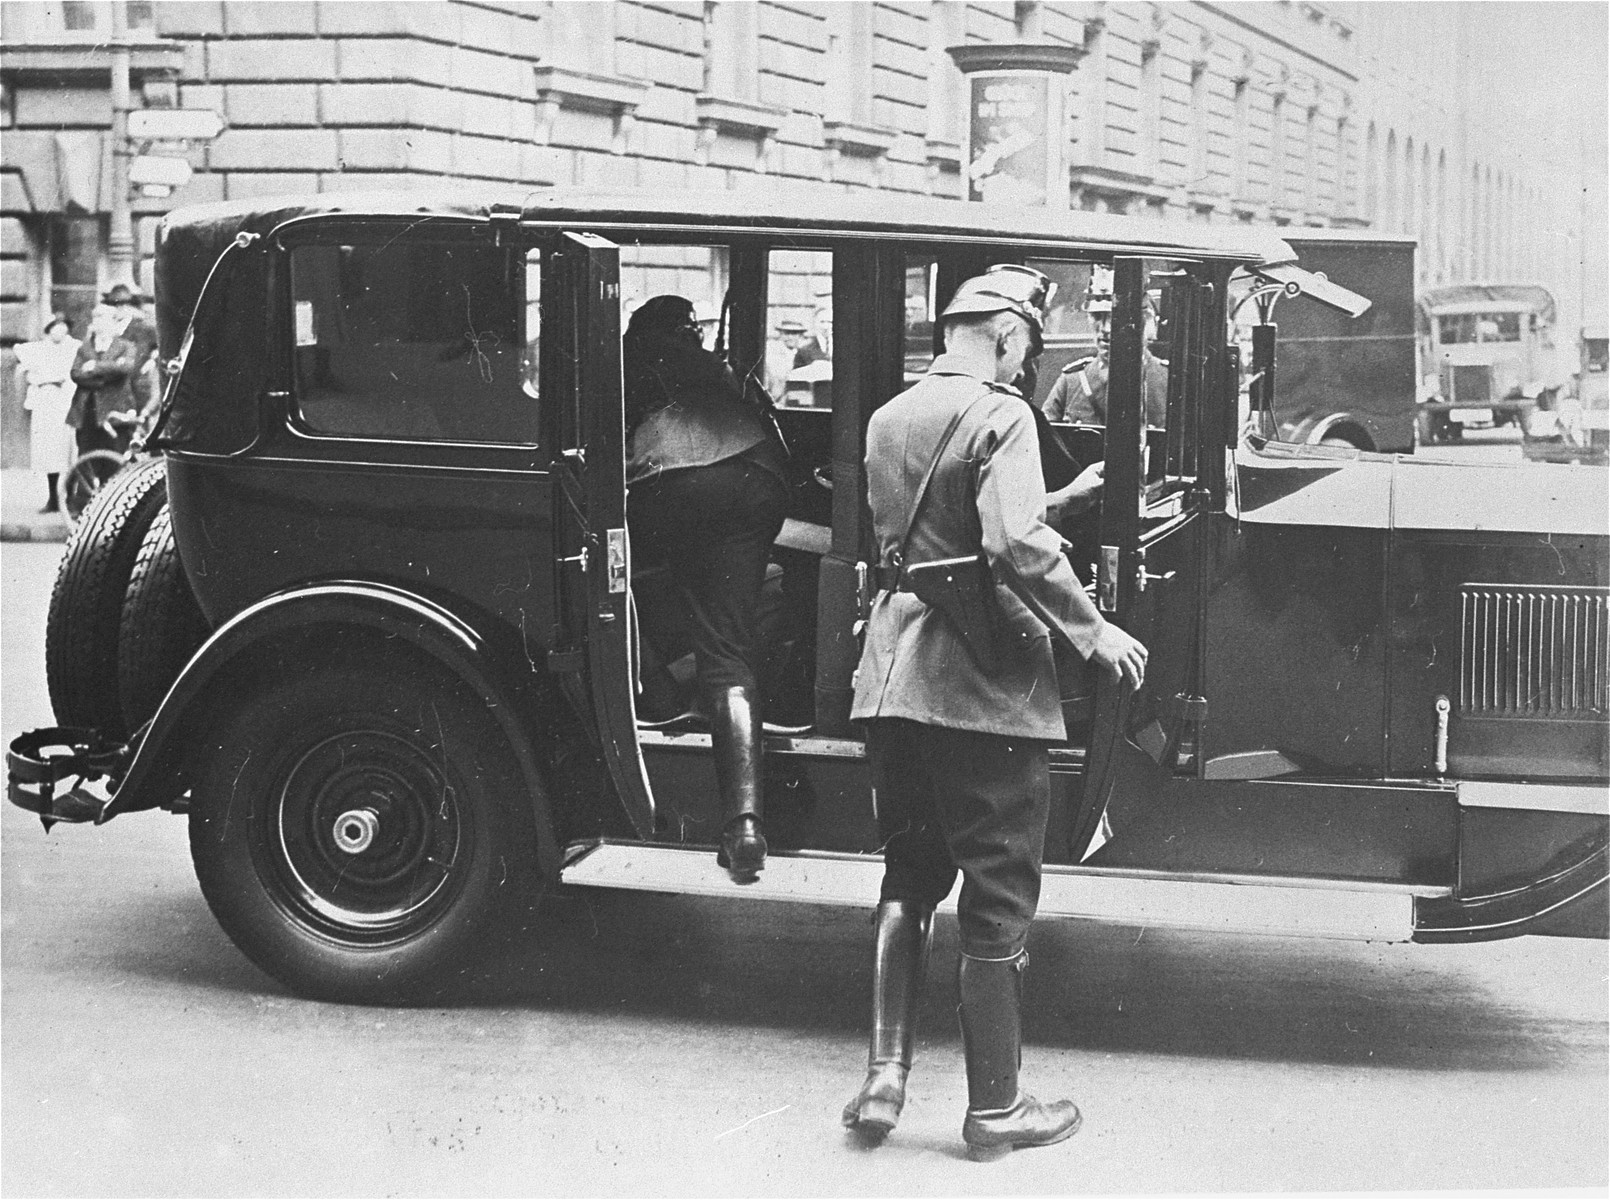 Police search a vehicle for weapons after the Gestapo ordered on 25 July 1933 that all vehicles in Prussia be inspected for arms.    All the other German states enacted a similar policy and conducted searches of trains, cars, and other vehicles.